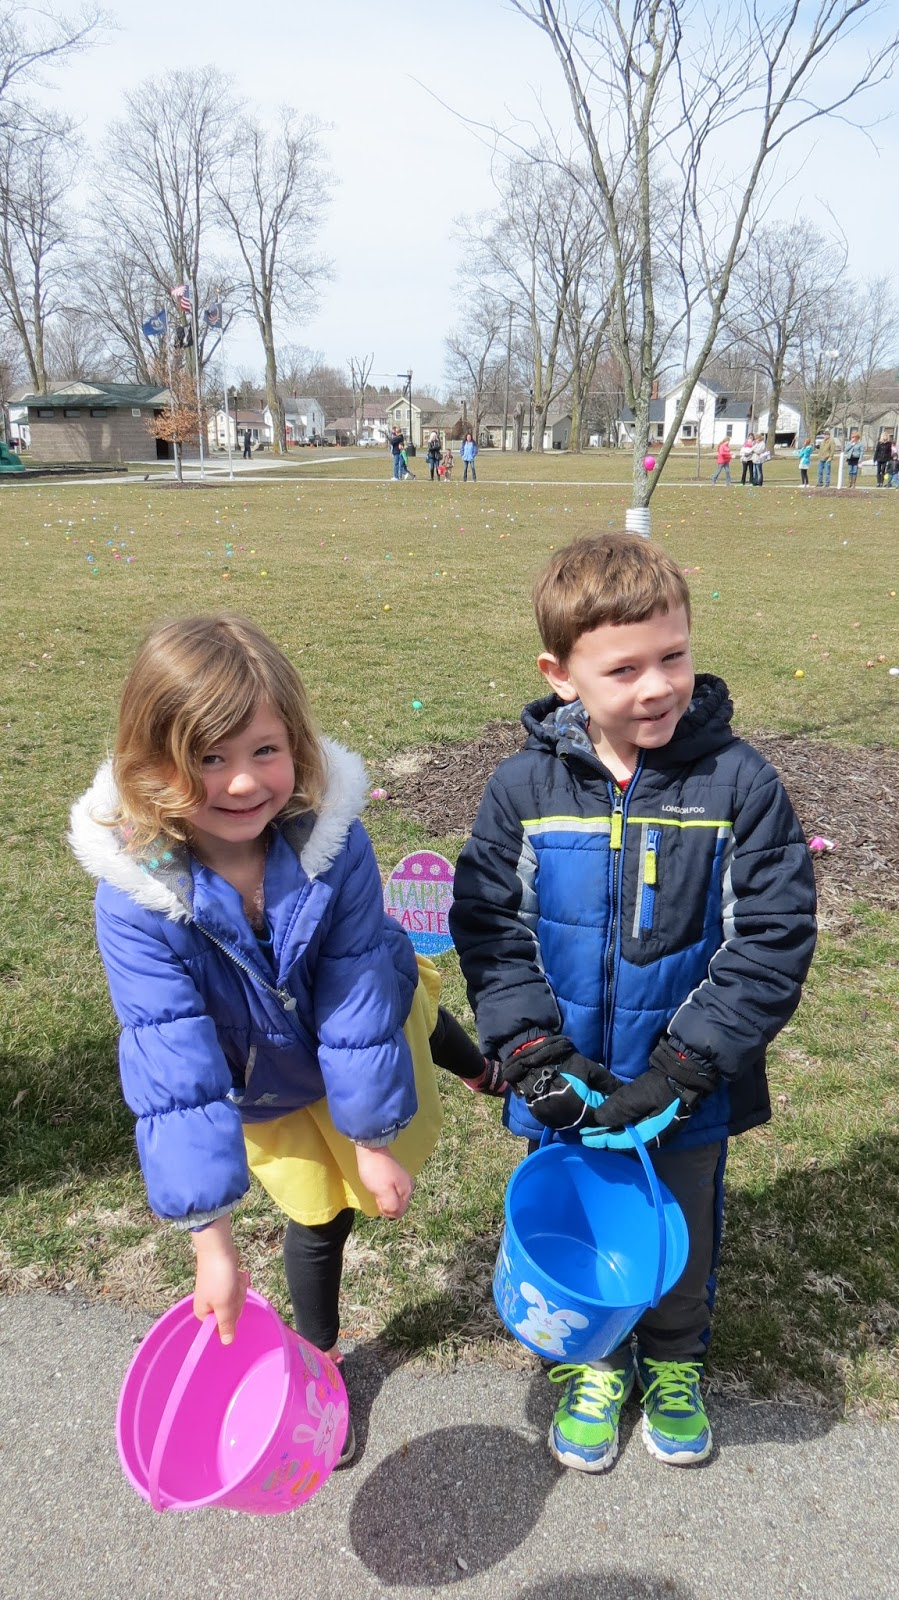 Over At Maries Catching Up Easter And My 35th Birthday Loncil We Rode The Train To Next Town Upon Arrival All Of Kids Circled Around Park Patiently Waited For Egg Hunt Begin